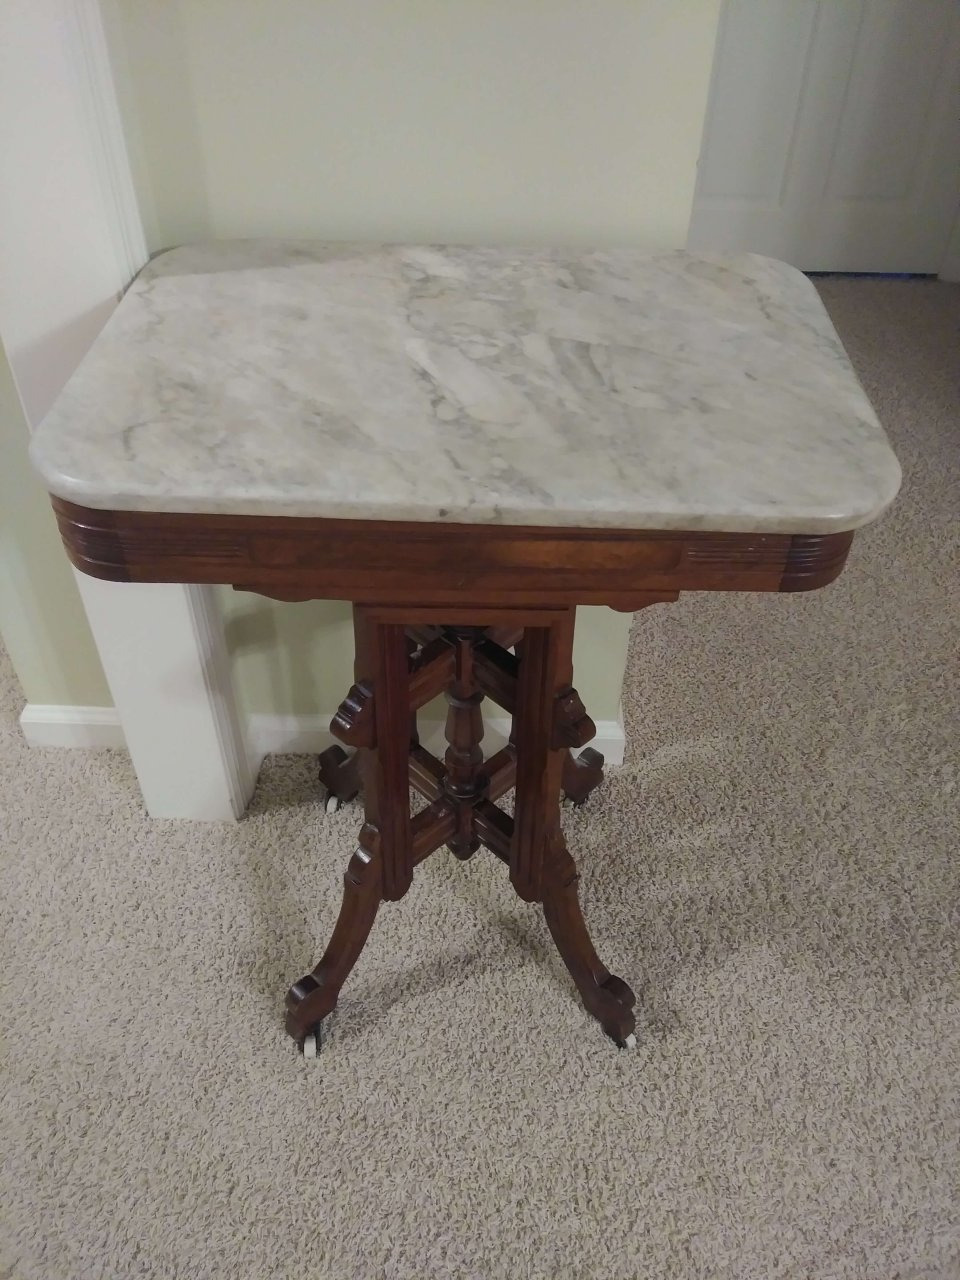 im ting ready to sell my marble top table and have no idea of its valu